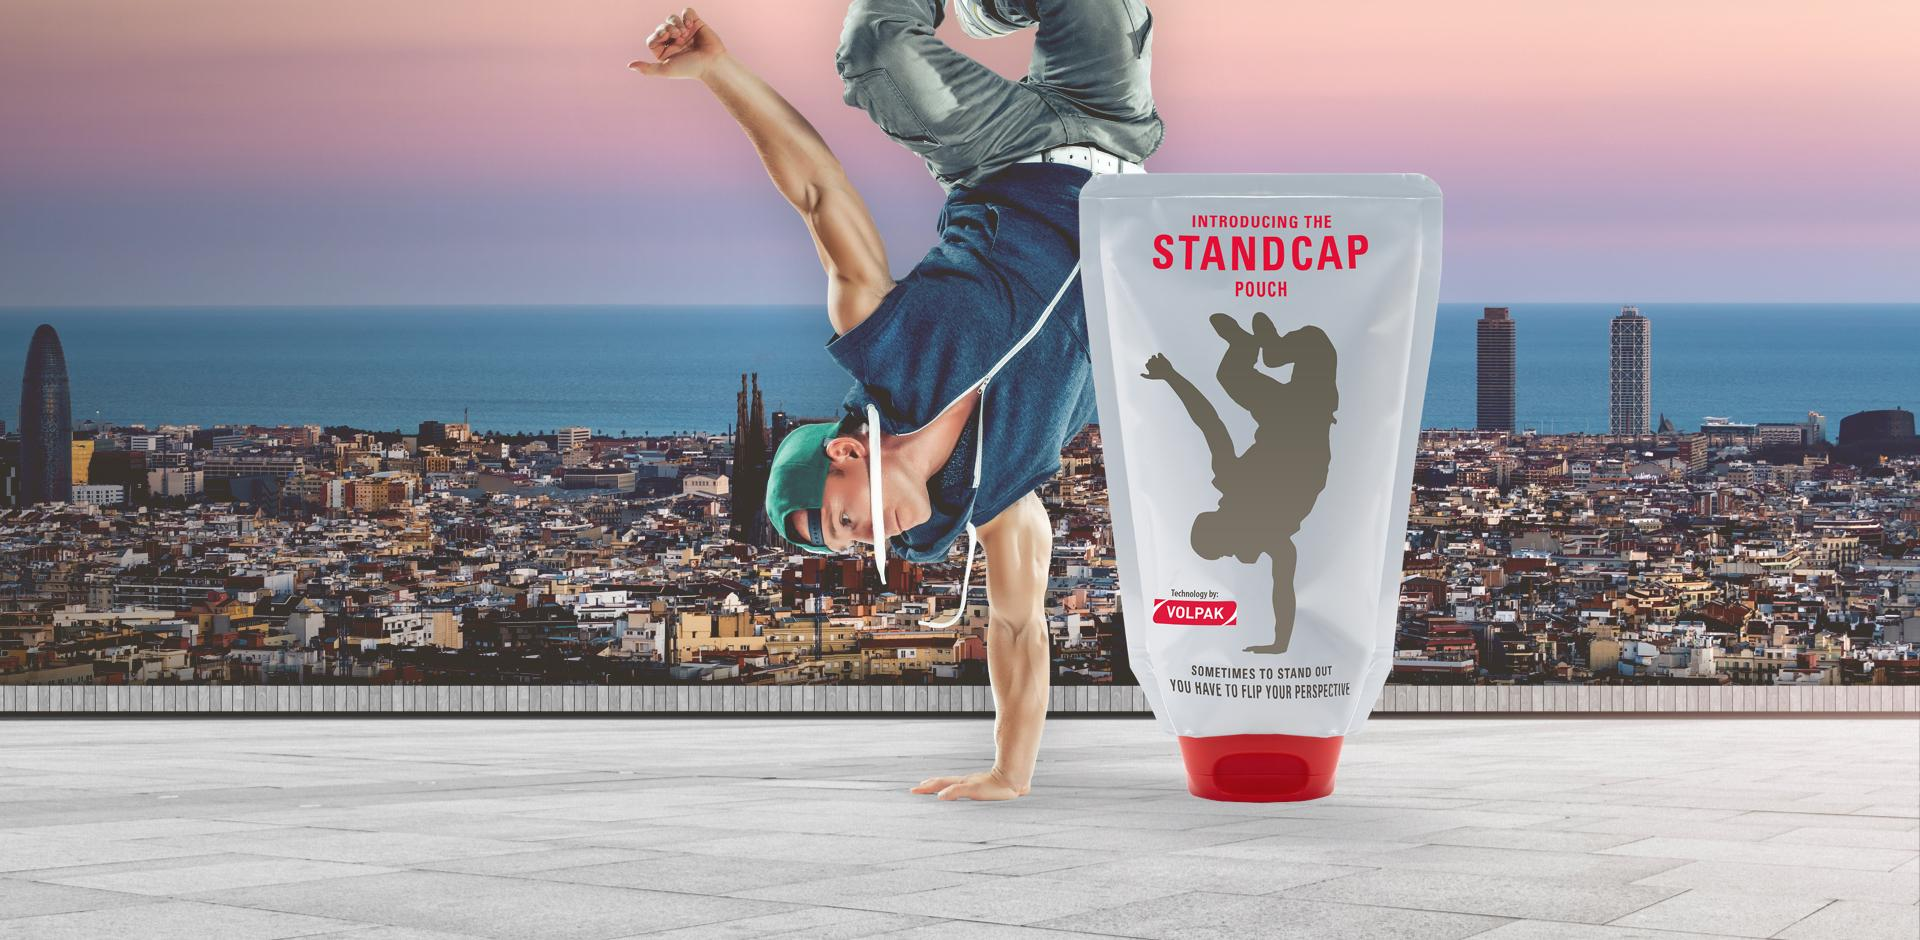 STANDCAP inverted pouch and breakdancer with Barcelona skyline